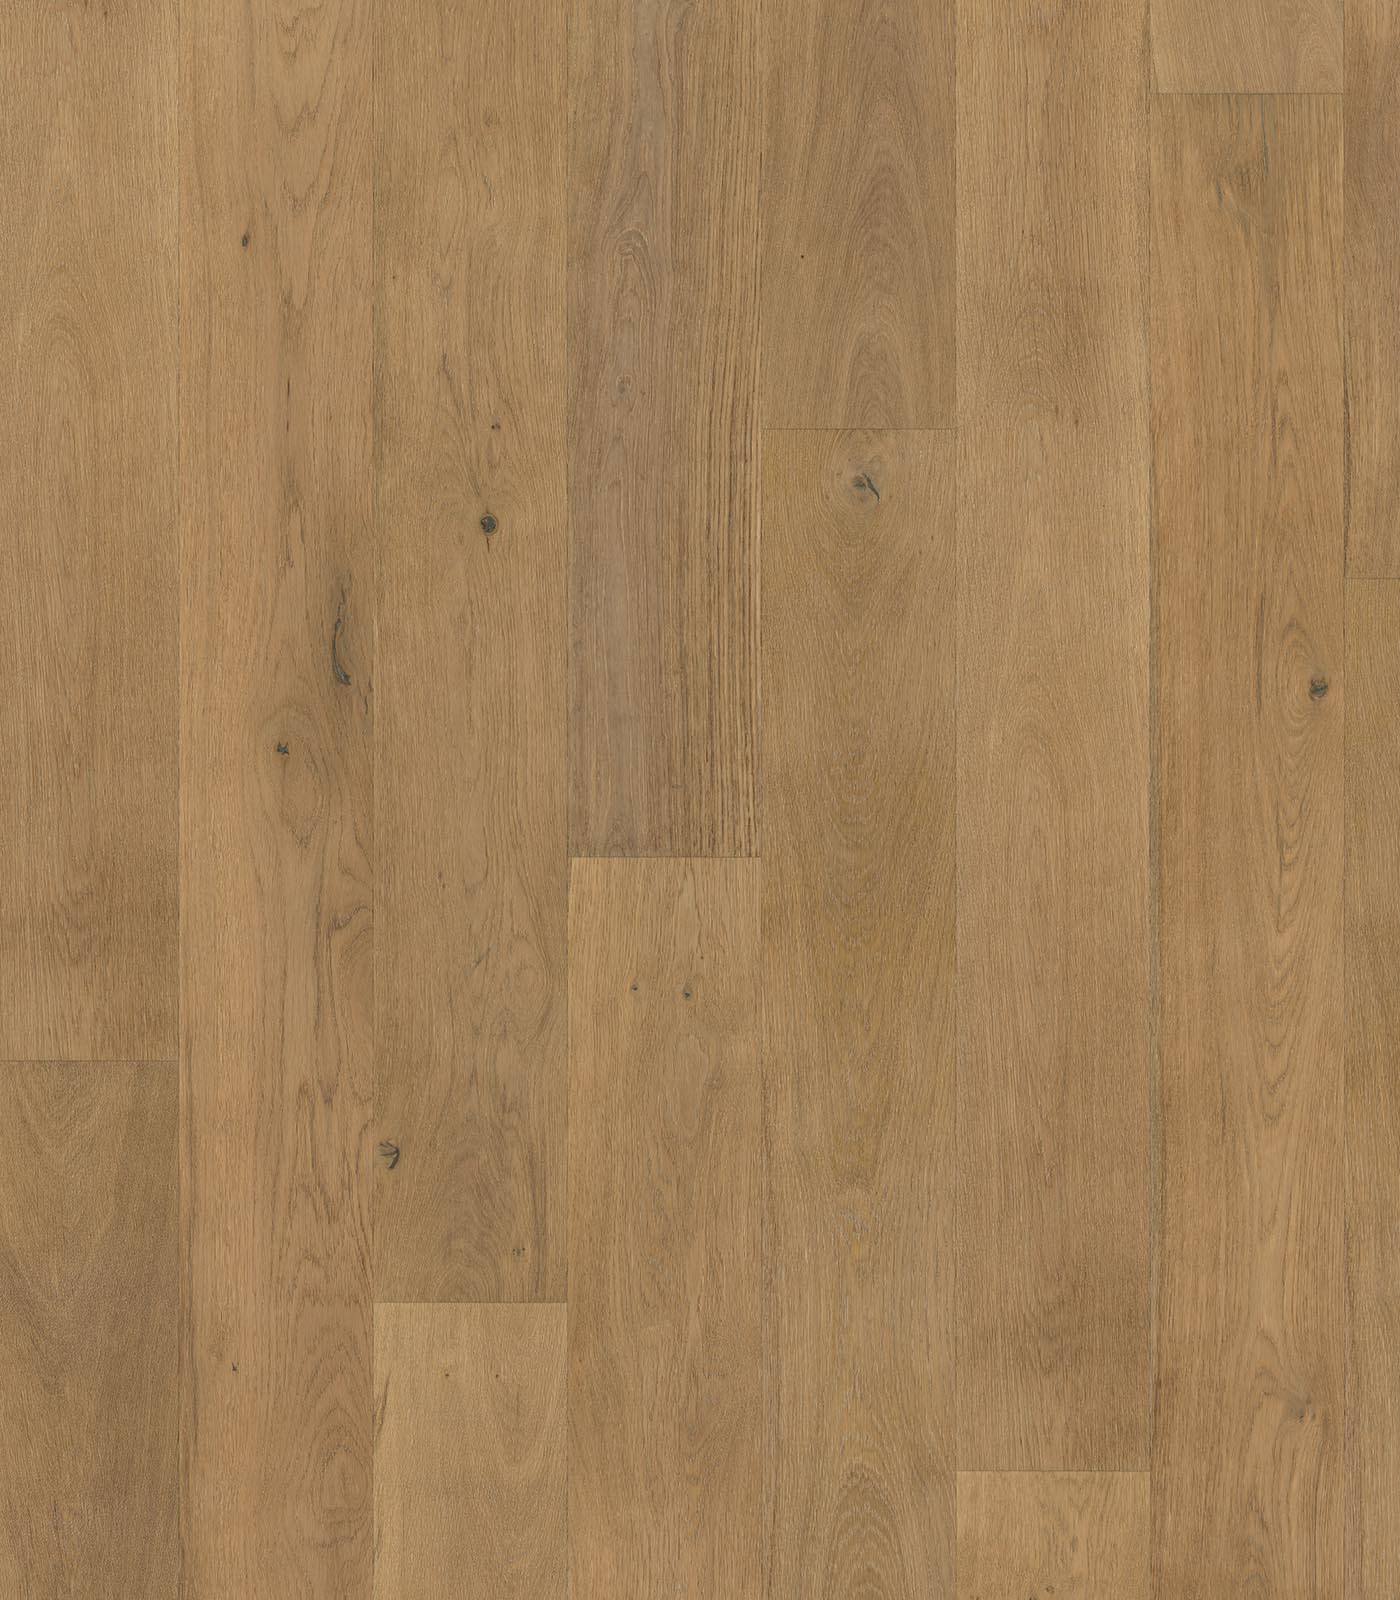 Santa Monica-Flooring engineered european Oak